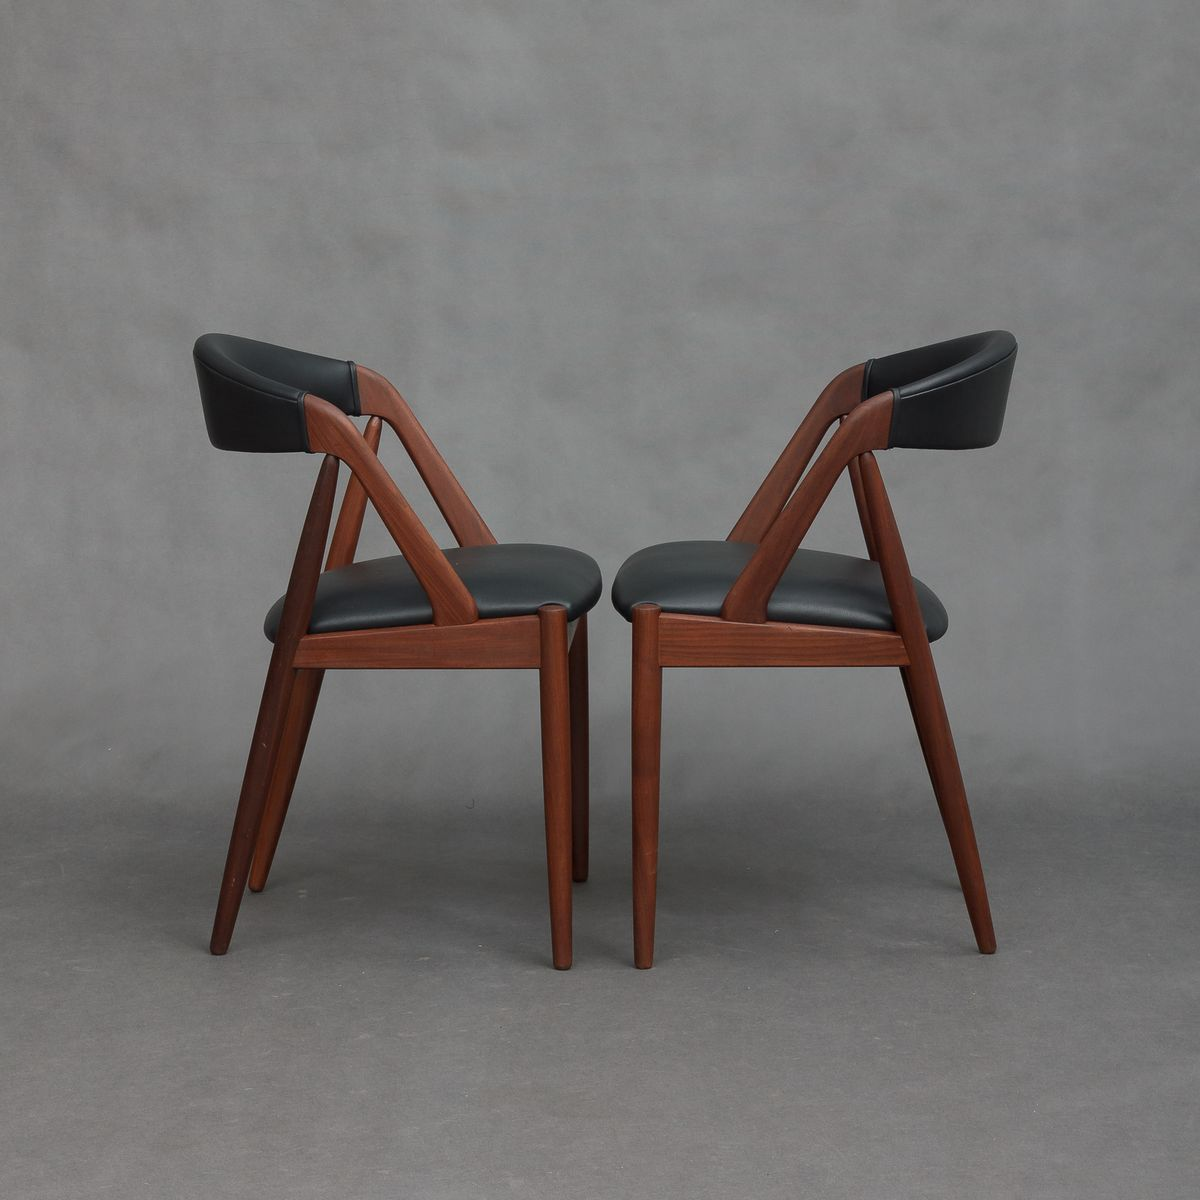 Model 31 Teak Chairs By Kai Kristiansen 1950s Set Of 2 For Sale At Pamono